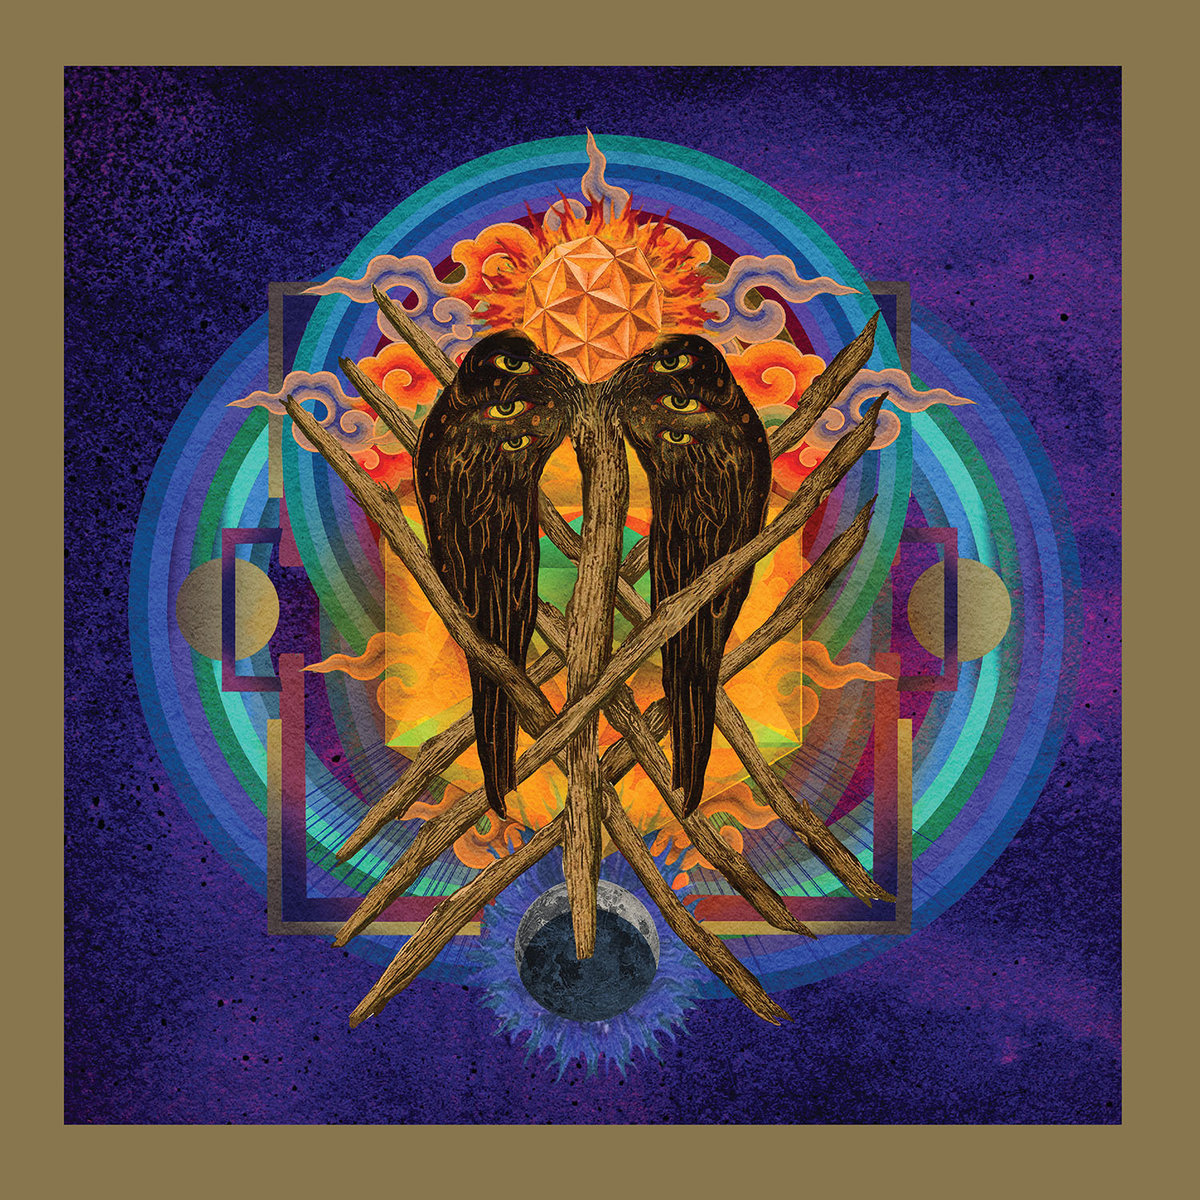 3. YOB - Our Raw Hearts - Oregon's doom metal stalwarts YOB haven't released many albums that I don't value dearly; Our Raw Heart is not an exception. Plaintive, dense, and not an easy listen, Our Raw Hearts is also filled with hope, mystique, grandeur, and nostalgia. At times groovy, at times lofty, and at times, crushingly heavy, each song is entirely cohesive with pummeling drums, buzzing riffs, and emotive, rusty vocals. Clocking in slightly over 70 minutes, there is nary a moment that doesn't add to the overall epicness of the journey. Our Raw Hearts is the doom metal soundtrack to Westworld.